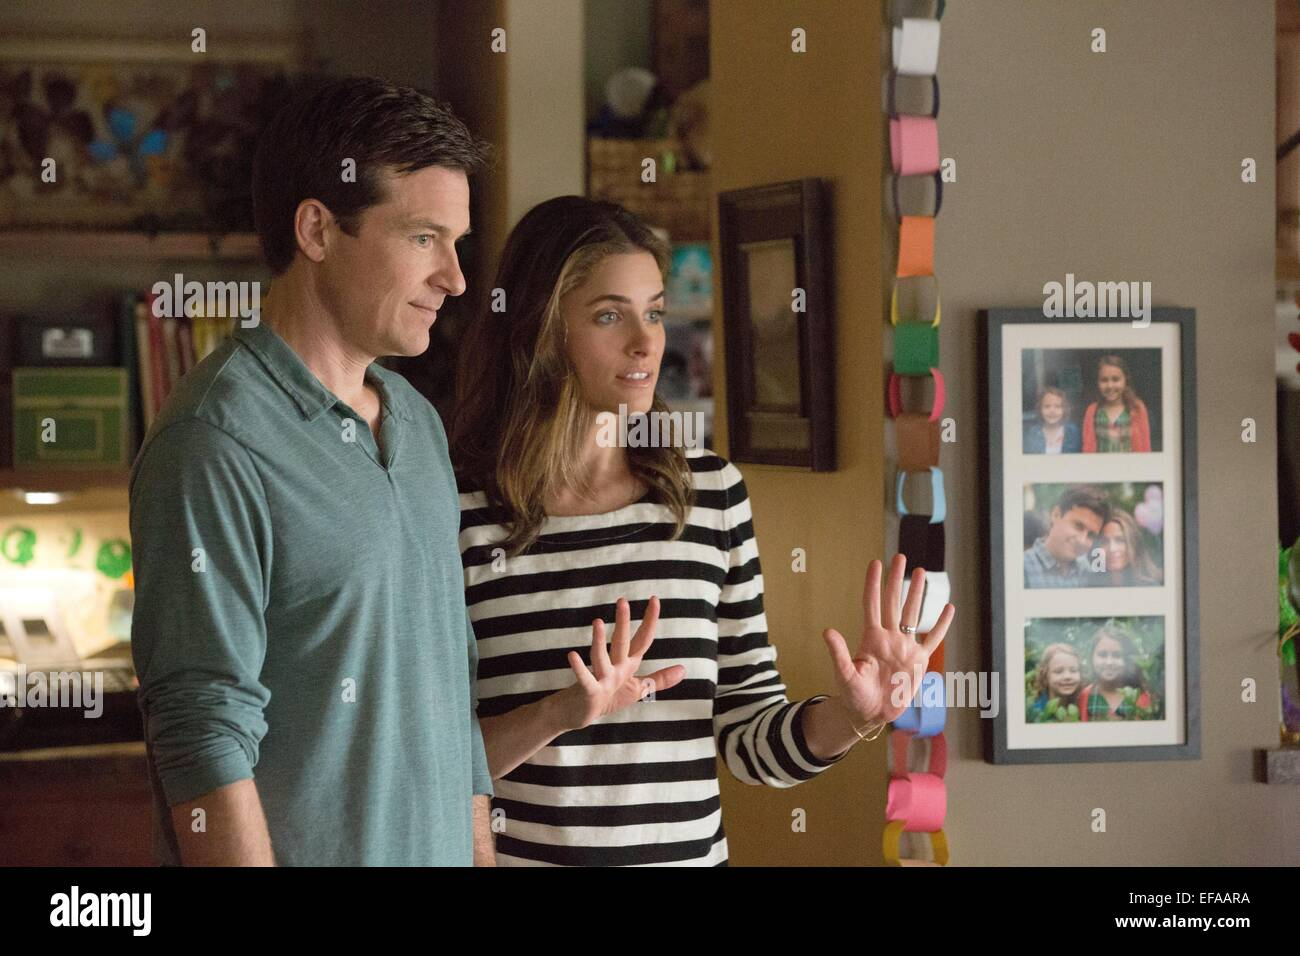 Jason Bateman Amanda Peet Identity Thief 2013 Stock Photo Alamy